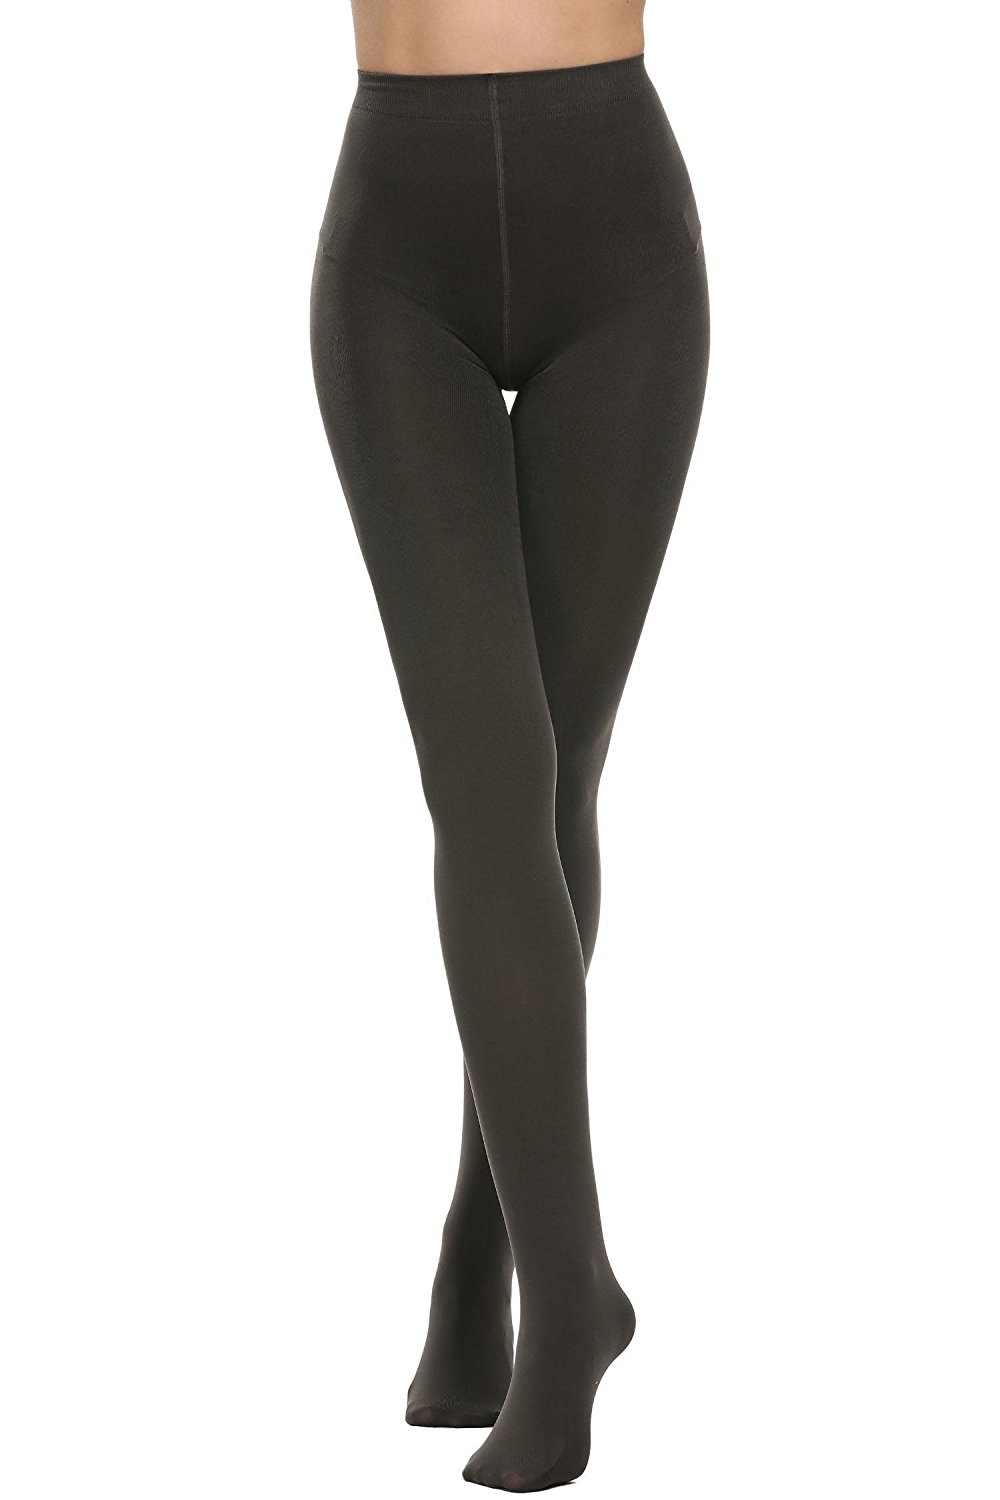 3b1c427ac94 Get Quotations · PEATAO 600 Denier Tights opaque tights black lady women hosiery  Opaque Footed Leg Warmers